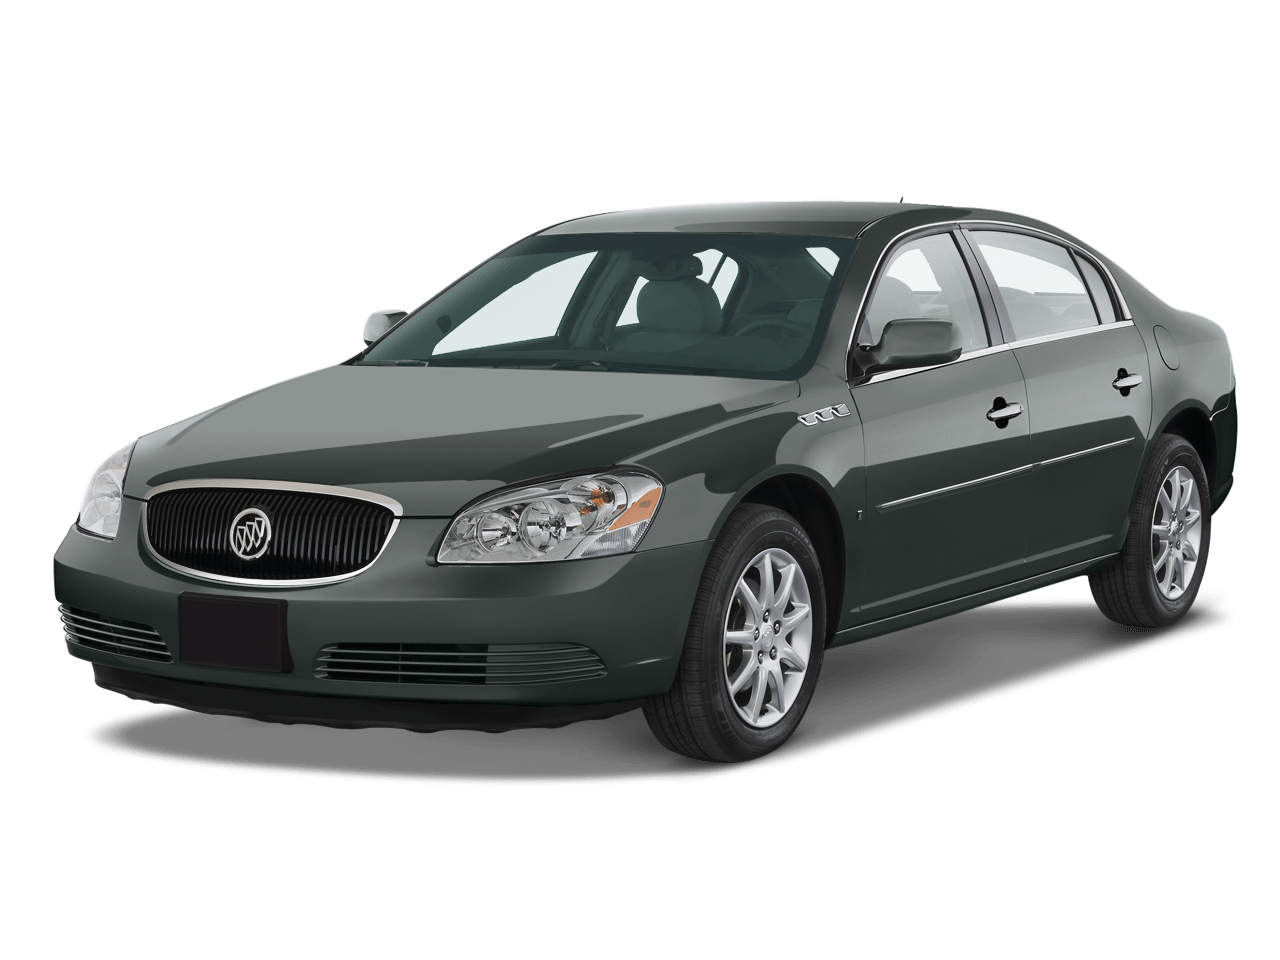 hight resolution of 2008 buick lucerne buick lucerne 2008 fuse box replacement part number at kopipes co